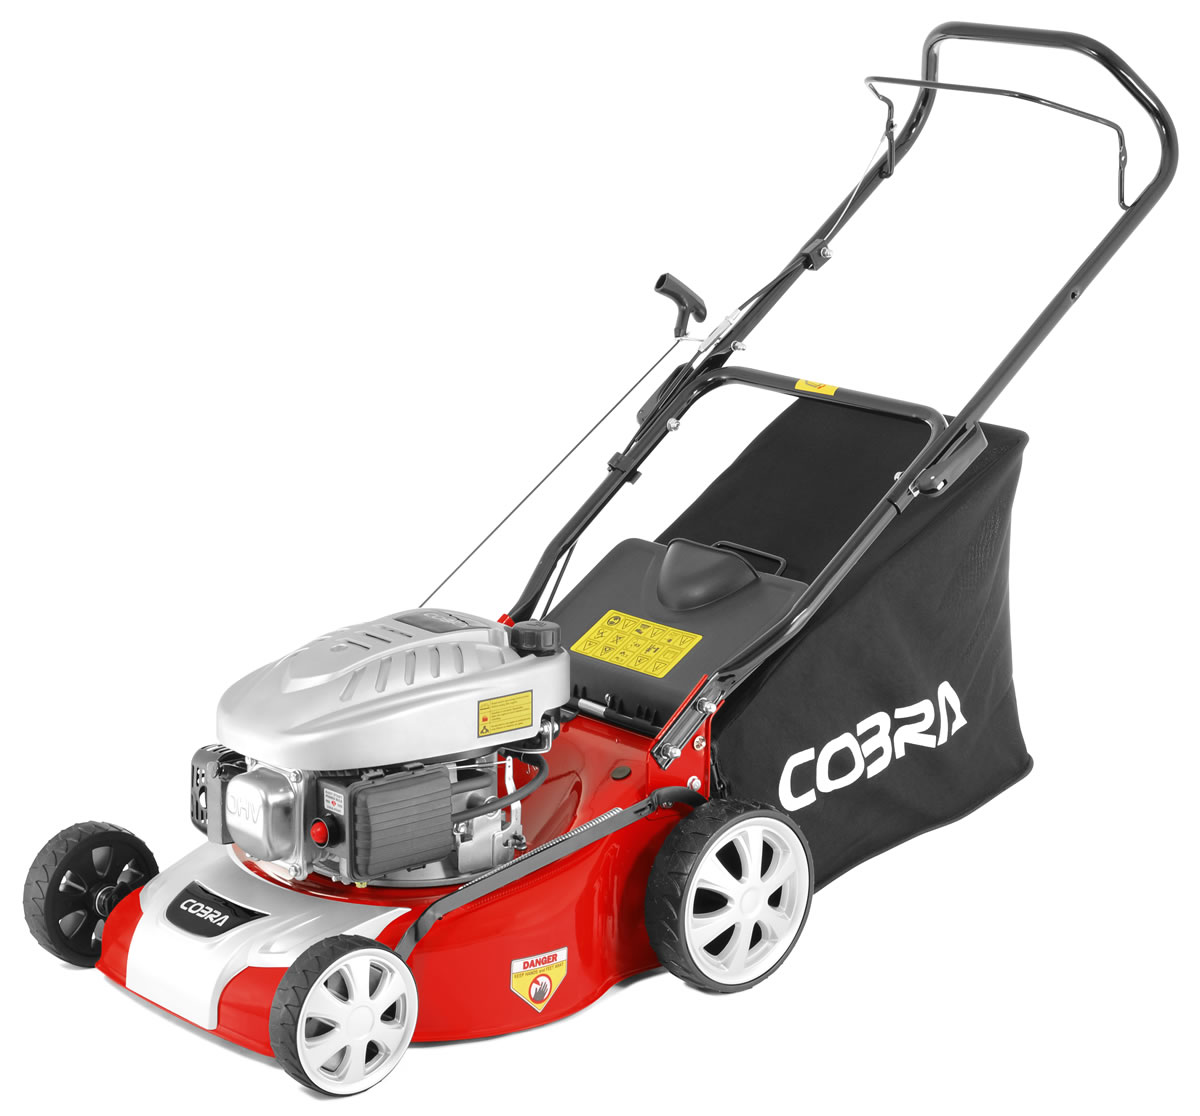 COBRA M40C Petrol Lawn Mower - Garden Machinery Direct.co.uk